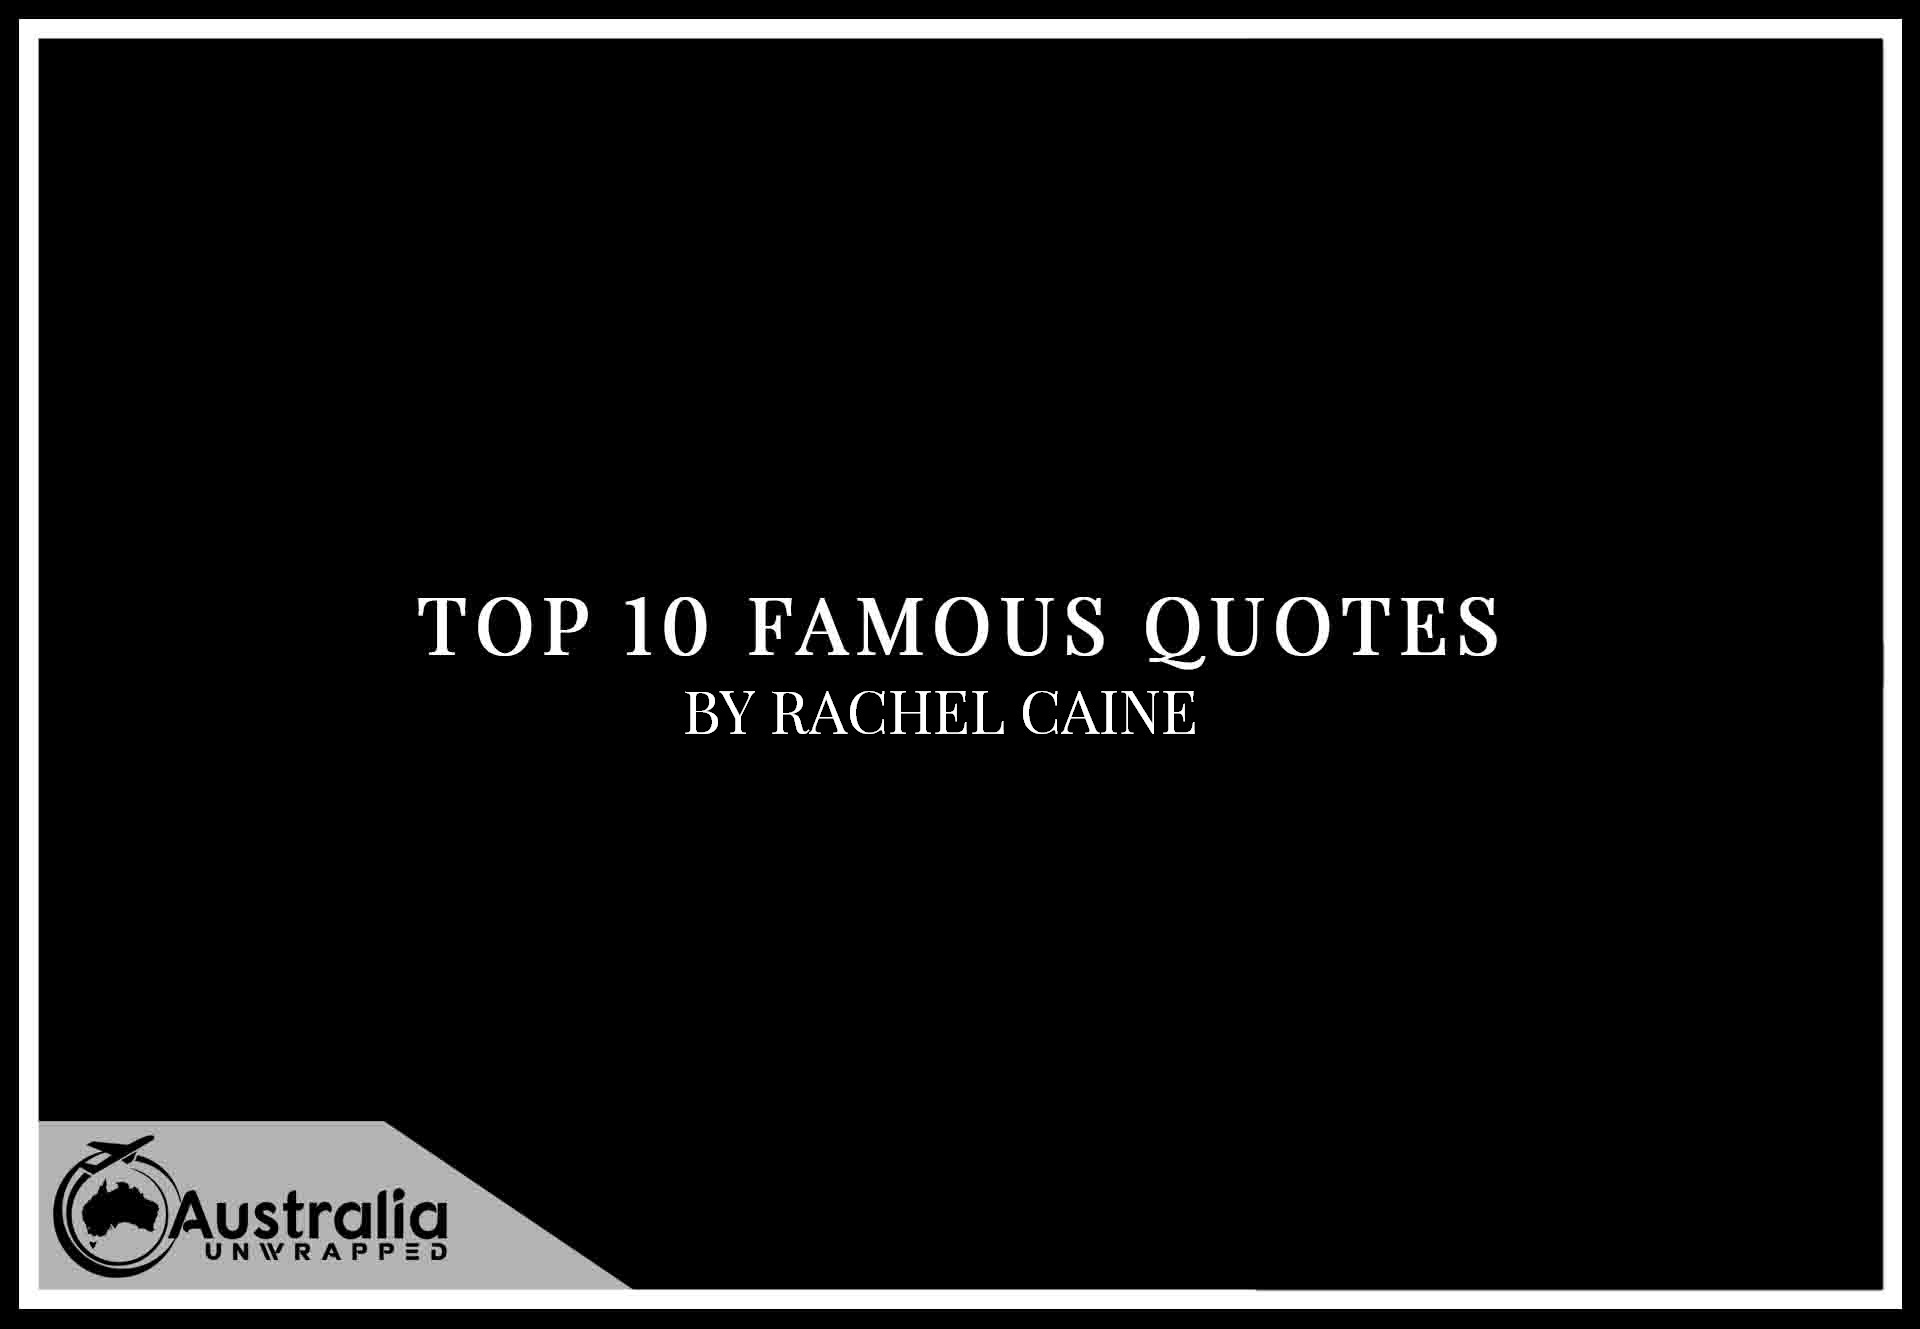 Top 10 Famous Quotes by Author Rachel Caine